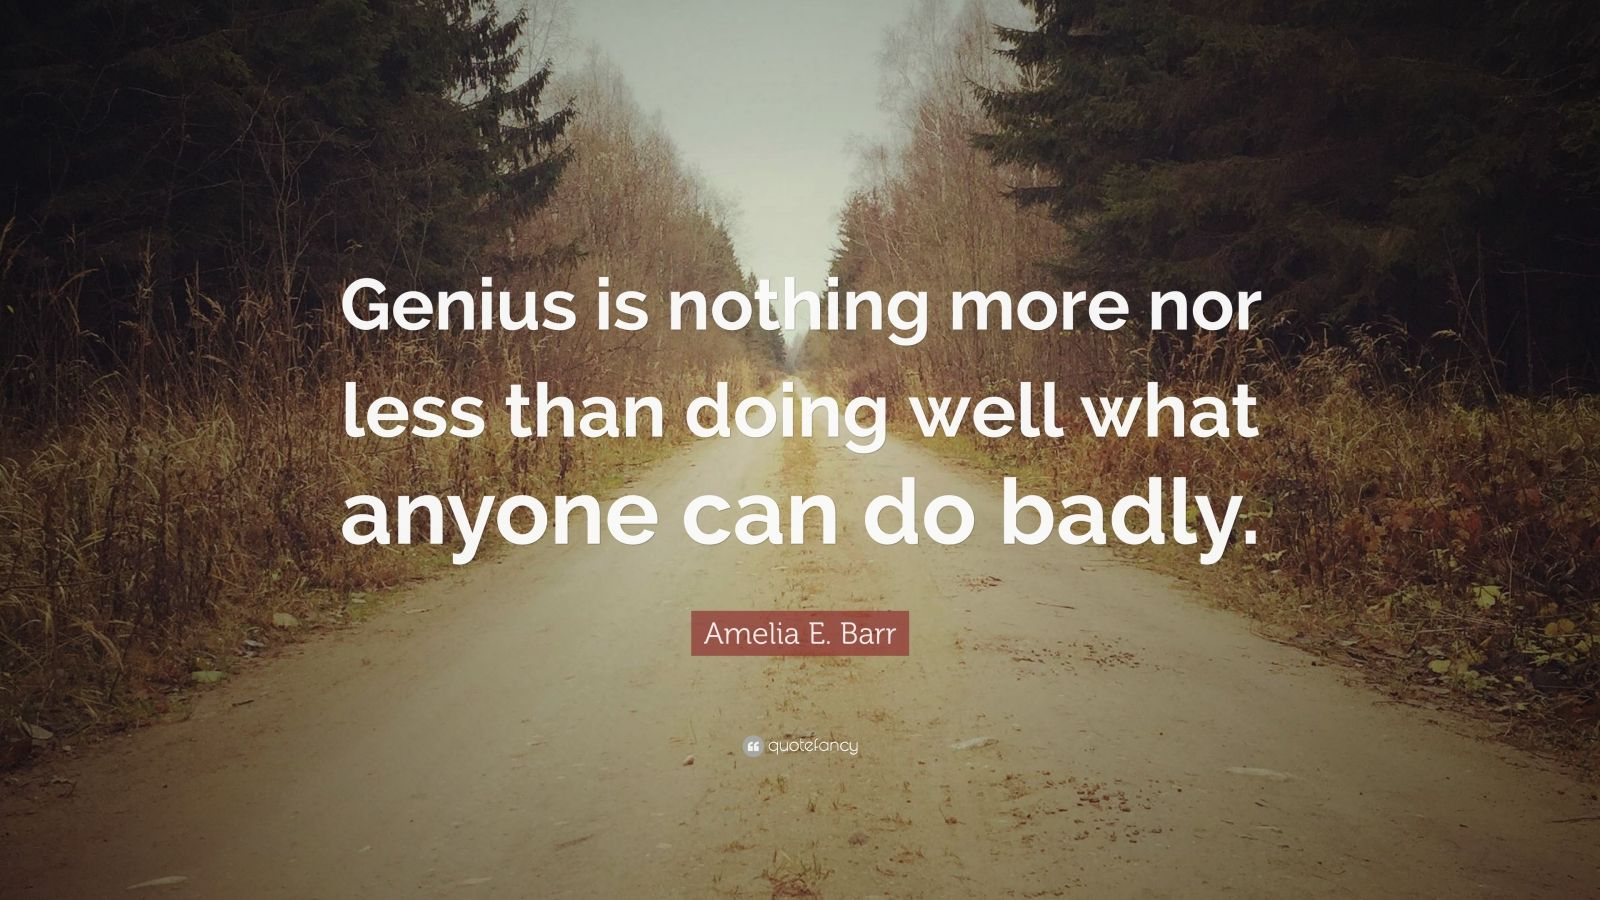 """Amelia E. Barr Quote: """"Genius is nothing more nor less than doing well what anyone can do badly."""""""